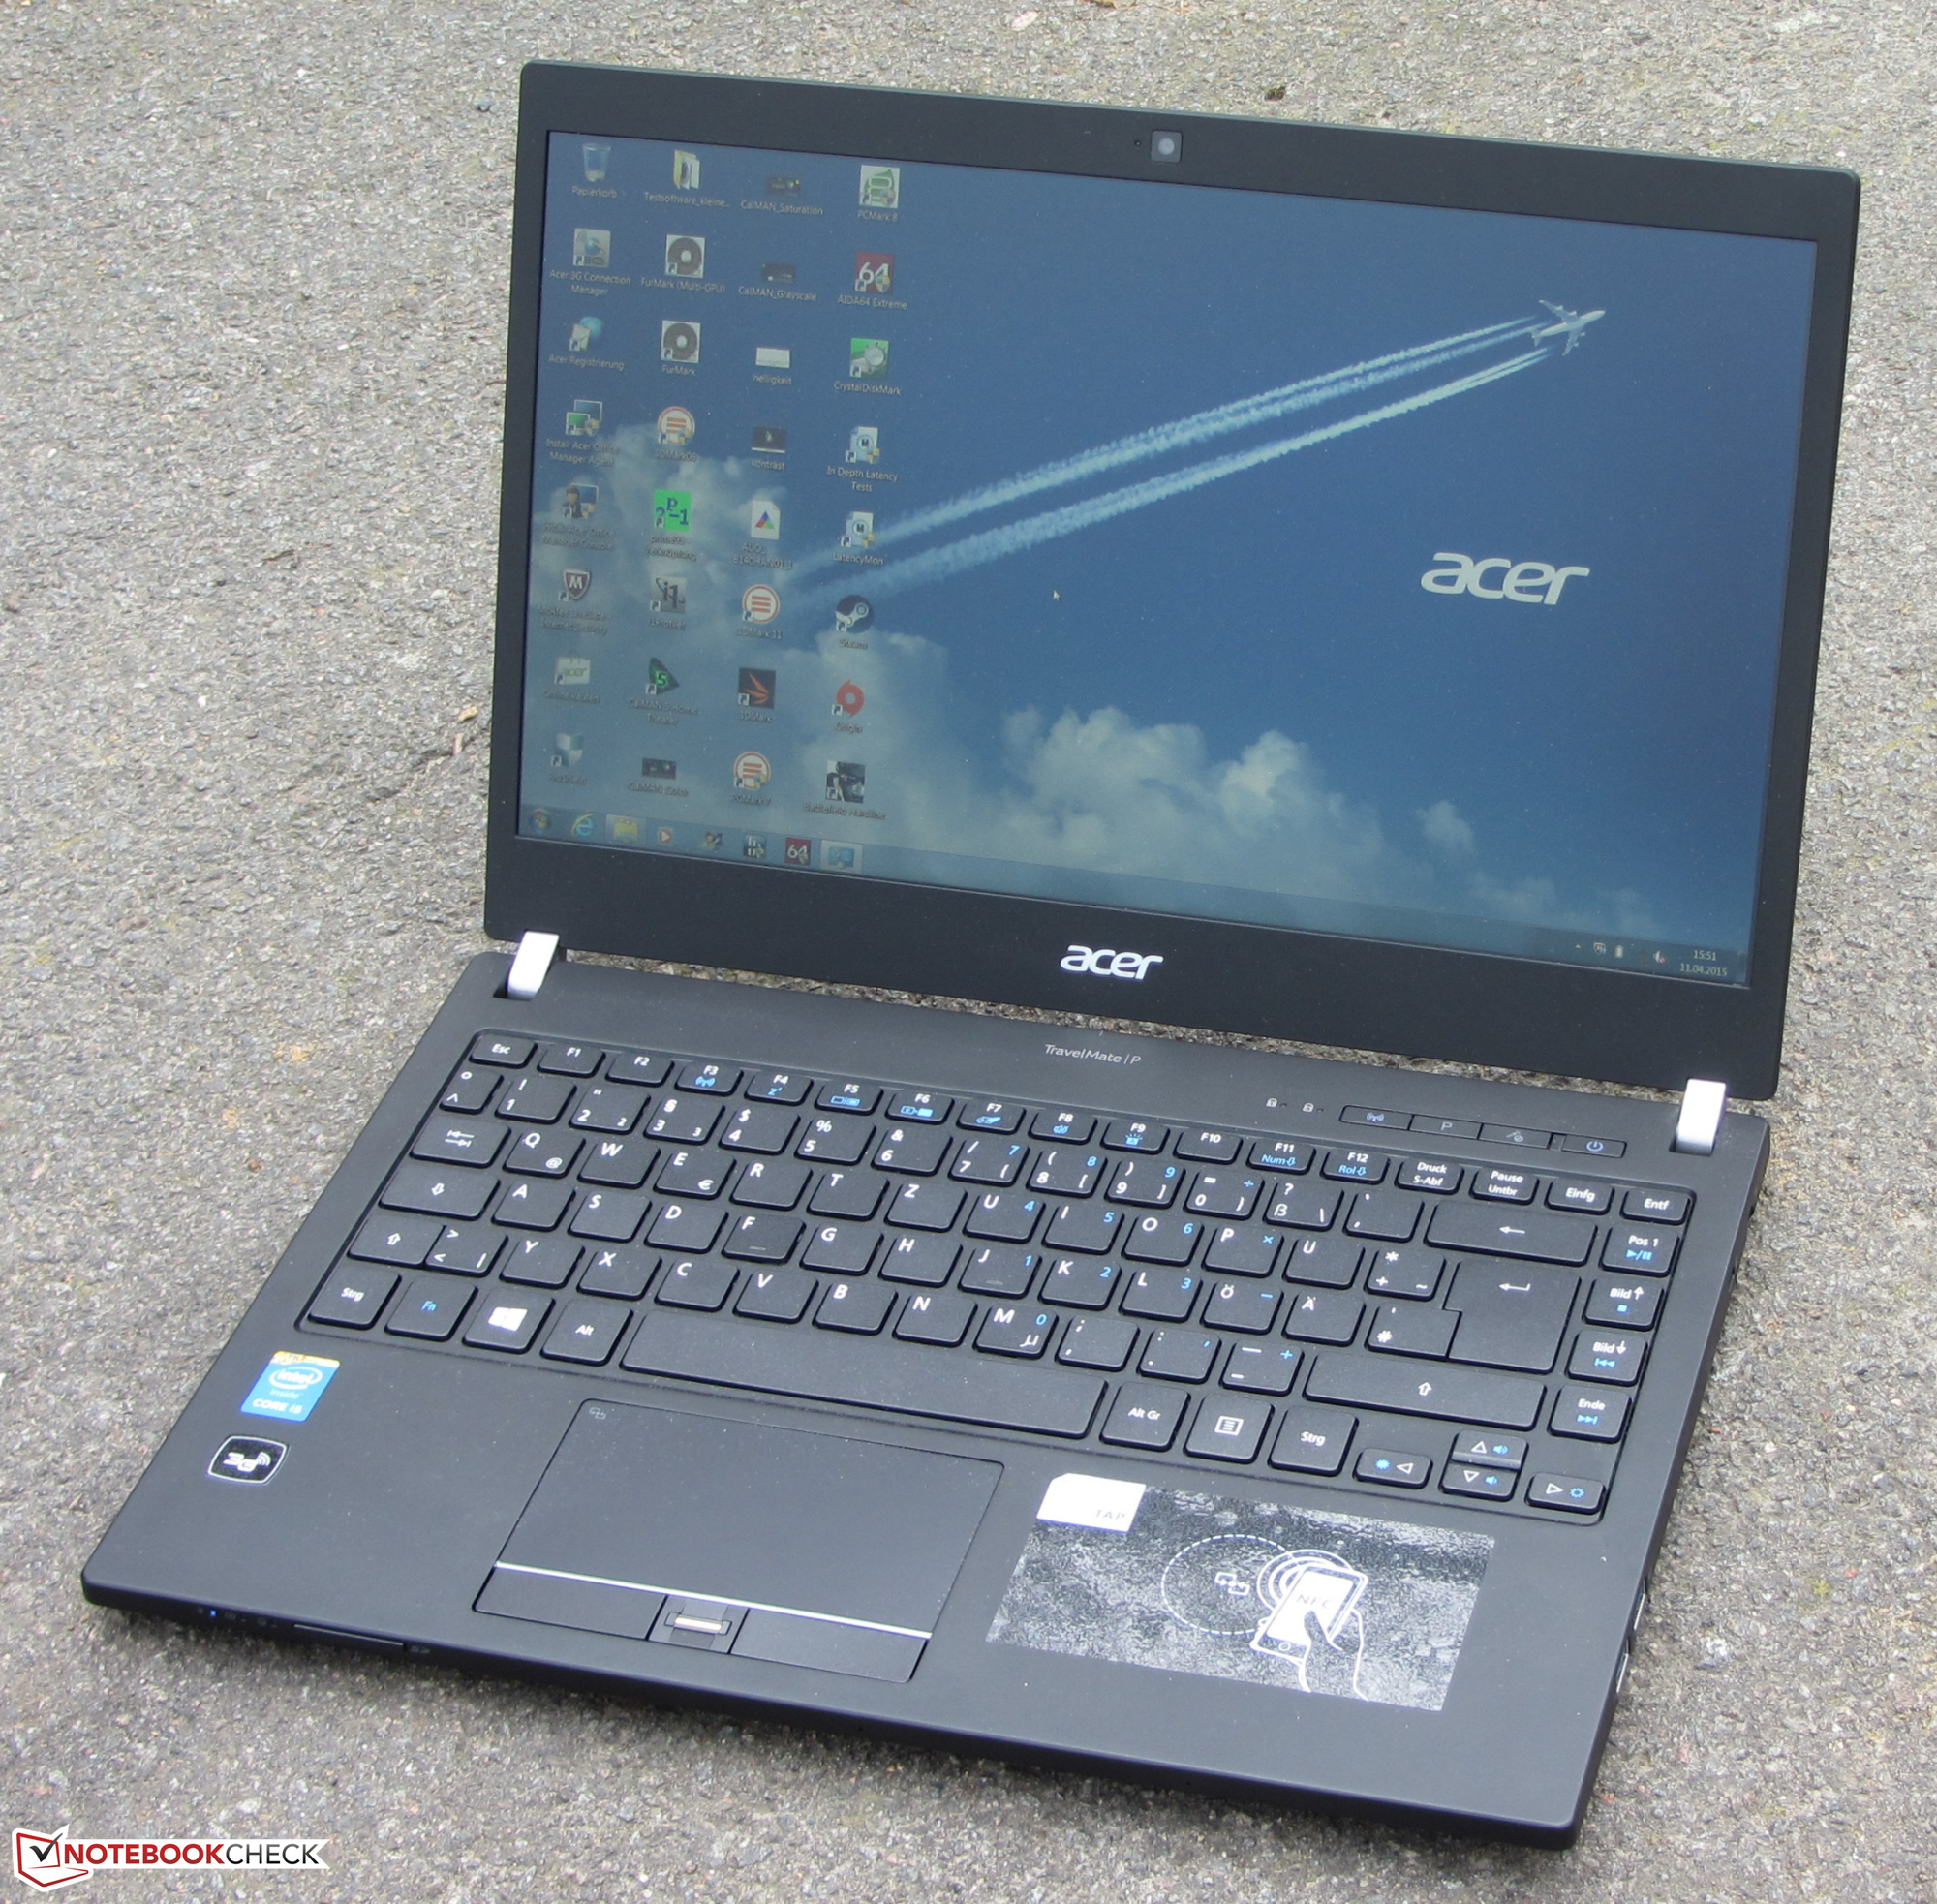 ACER TRAVELMATE P645-MG REALTEK CARD READER WINDOWS 7 DRIVERS DOWNLOAD